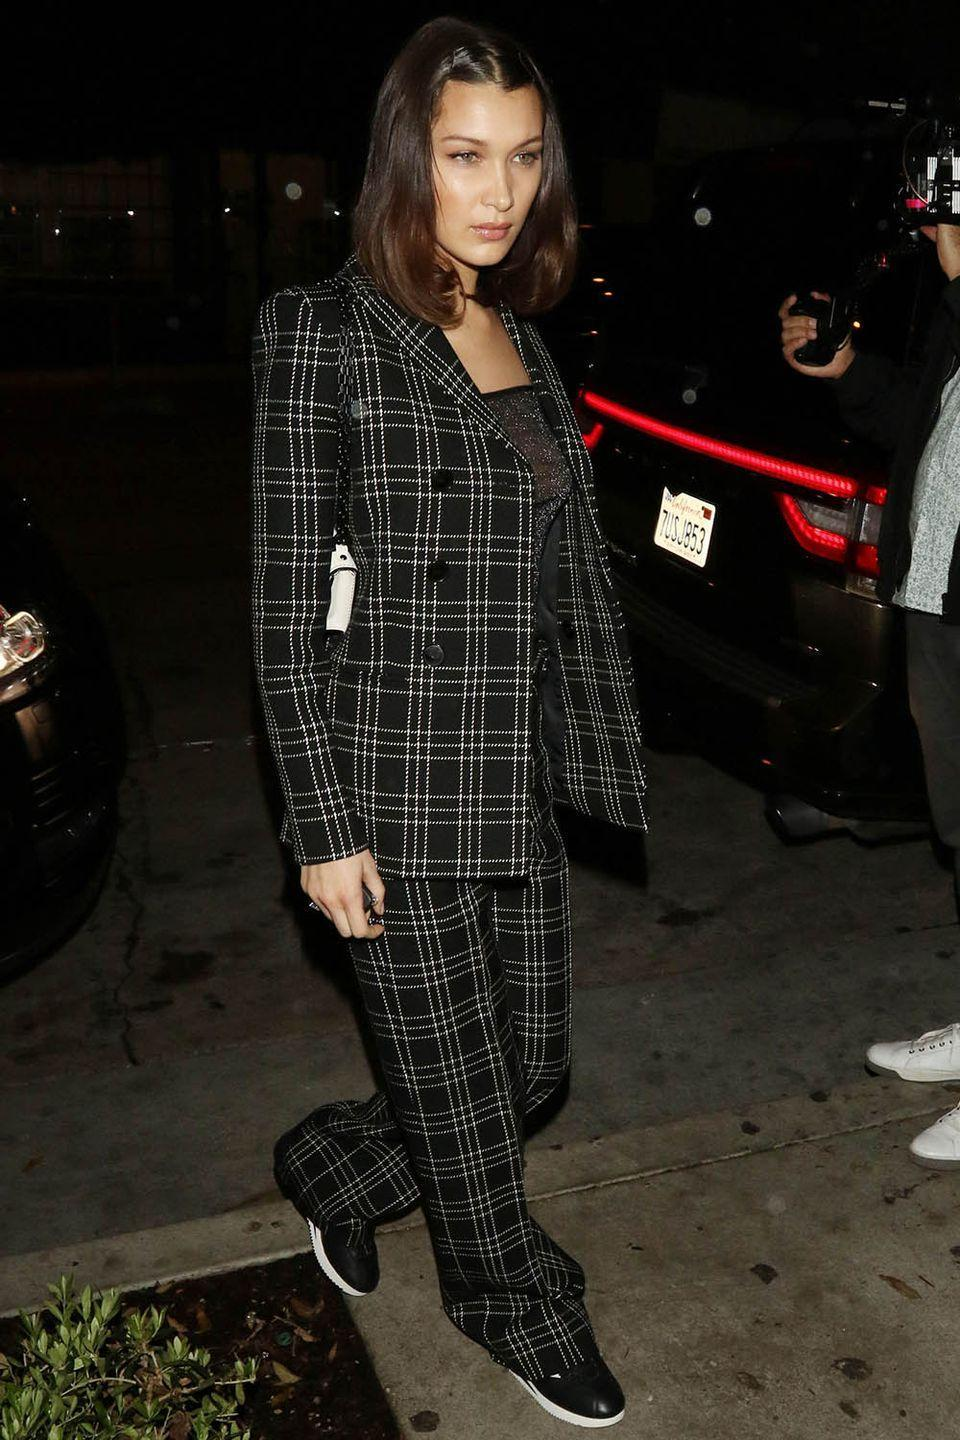 <p>In a plaid Dior suit from the French fashion house's fall 2018 collection, sheer top, white shoulder bag, and black sneakers while out in LA.</p>